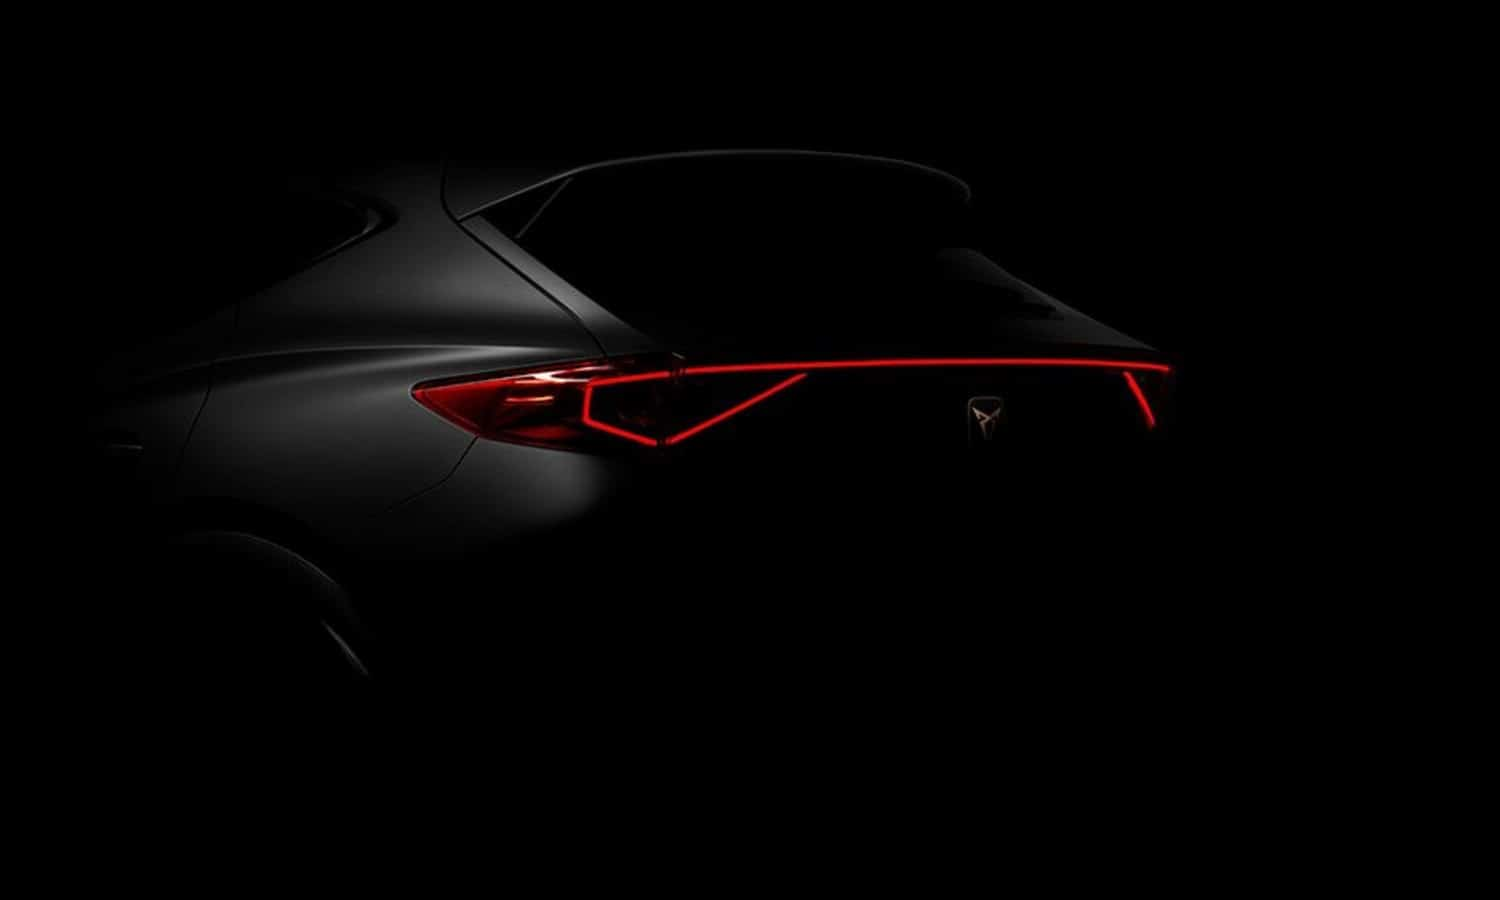 Cupra Formentor Geneva International Motor Show 2020